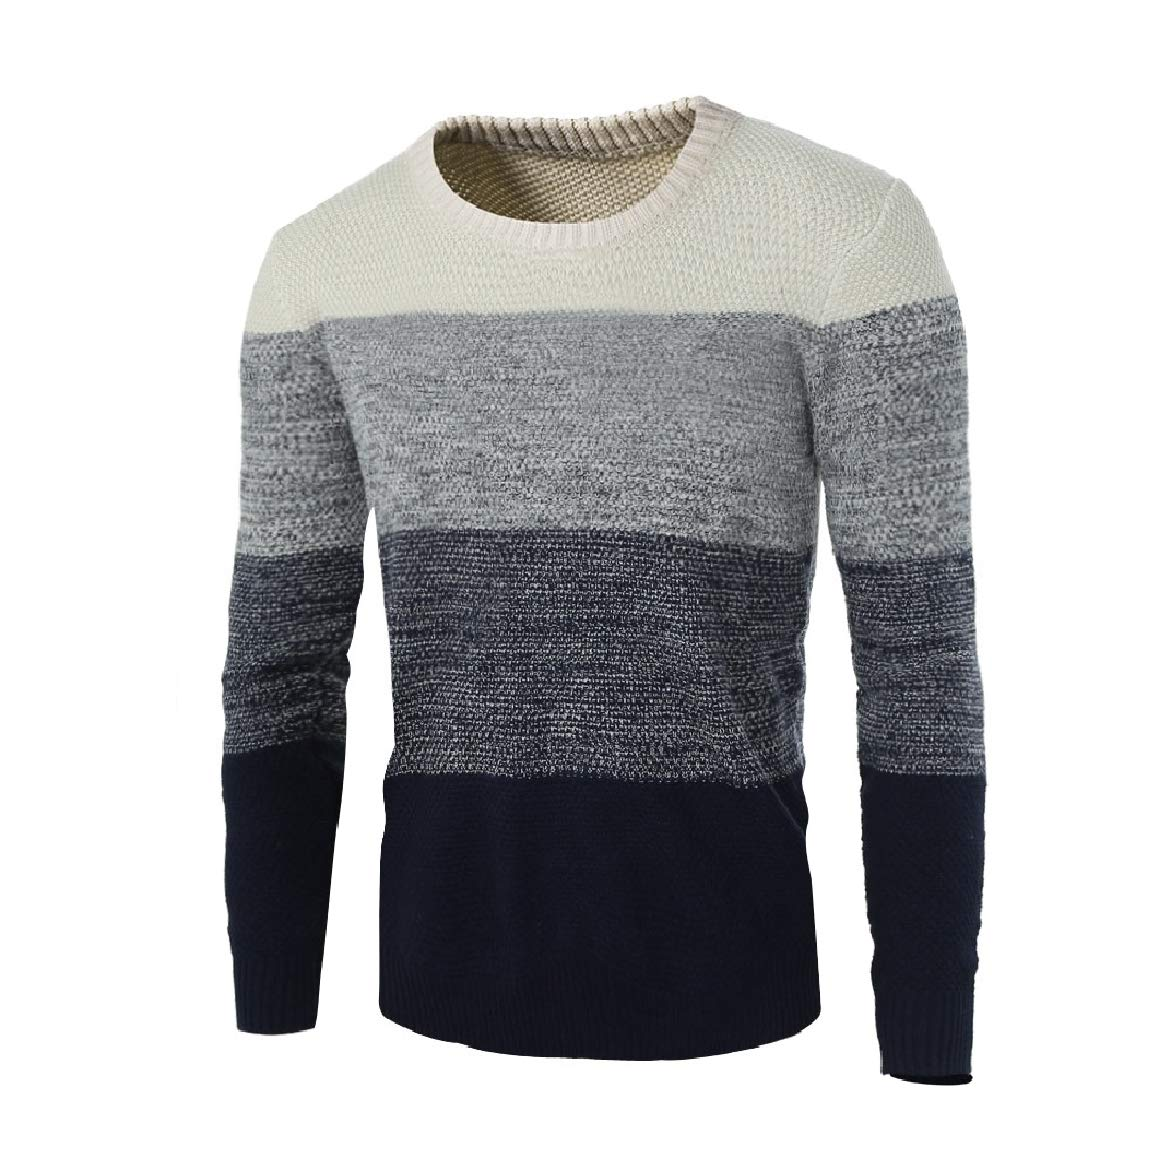 Winwinus Mens Lounge Splicing Knitted Slim Round Neck Contrast Top Sweater